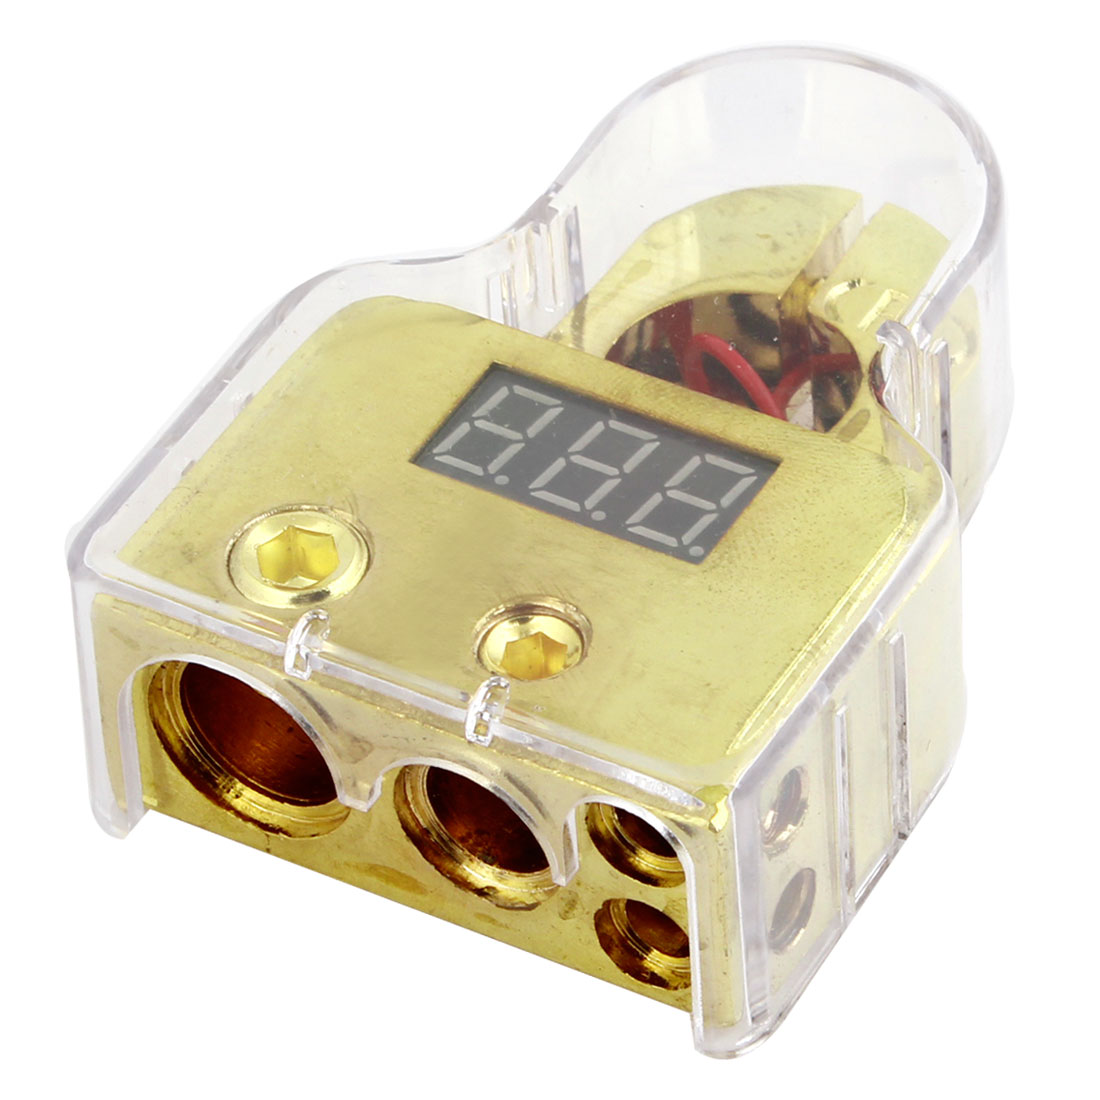 Volt Meter Display Gold Tone Plated Digital Battery Terminal Clamp